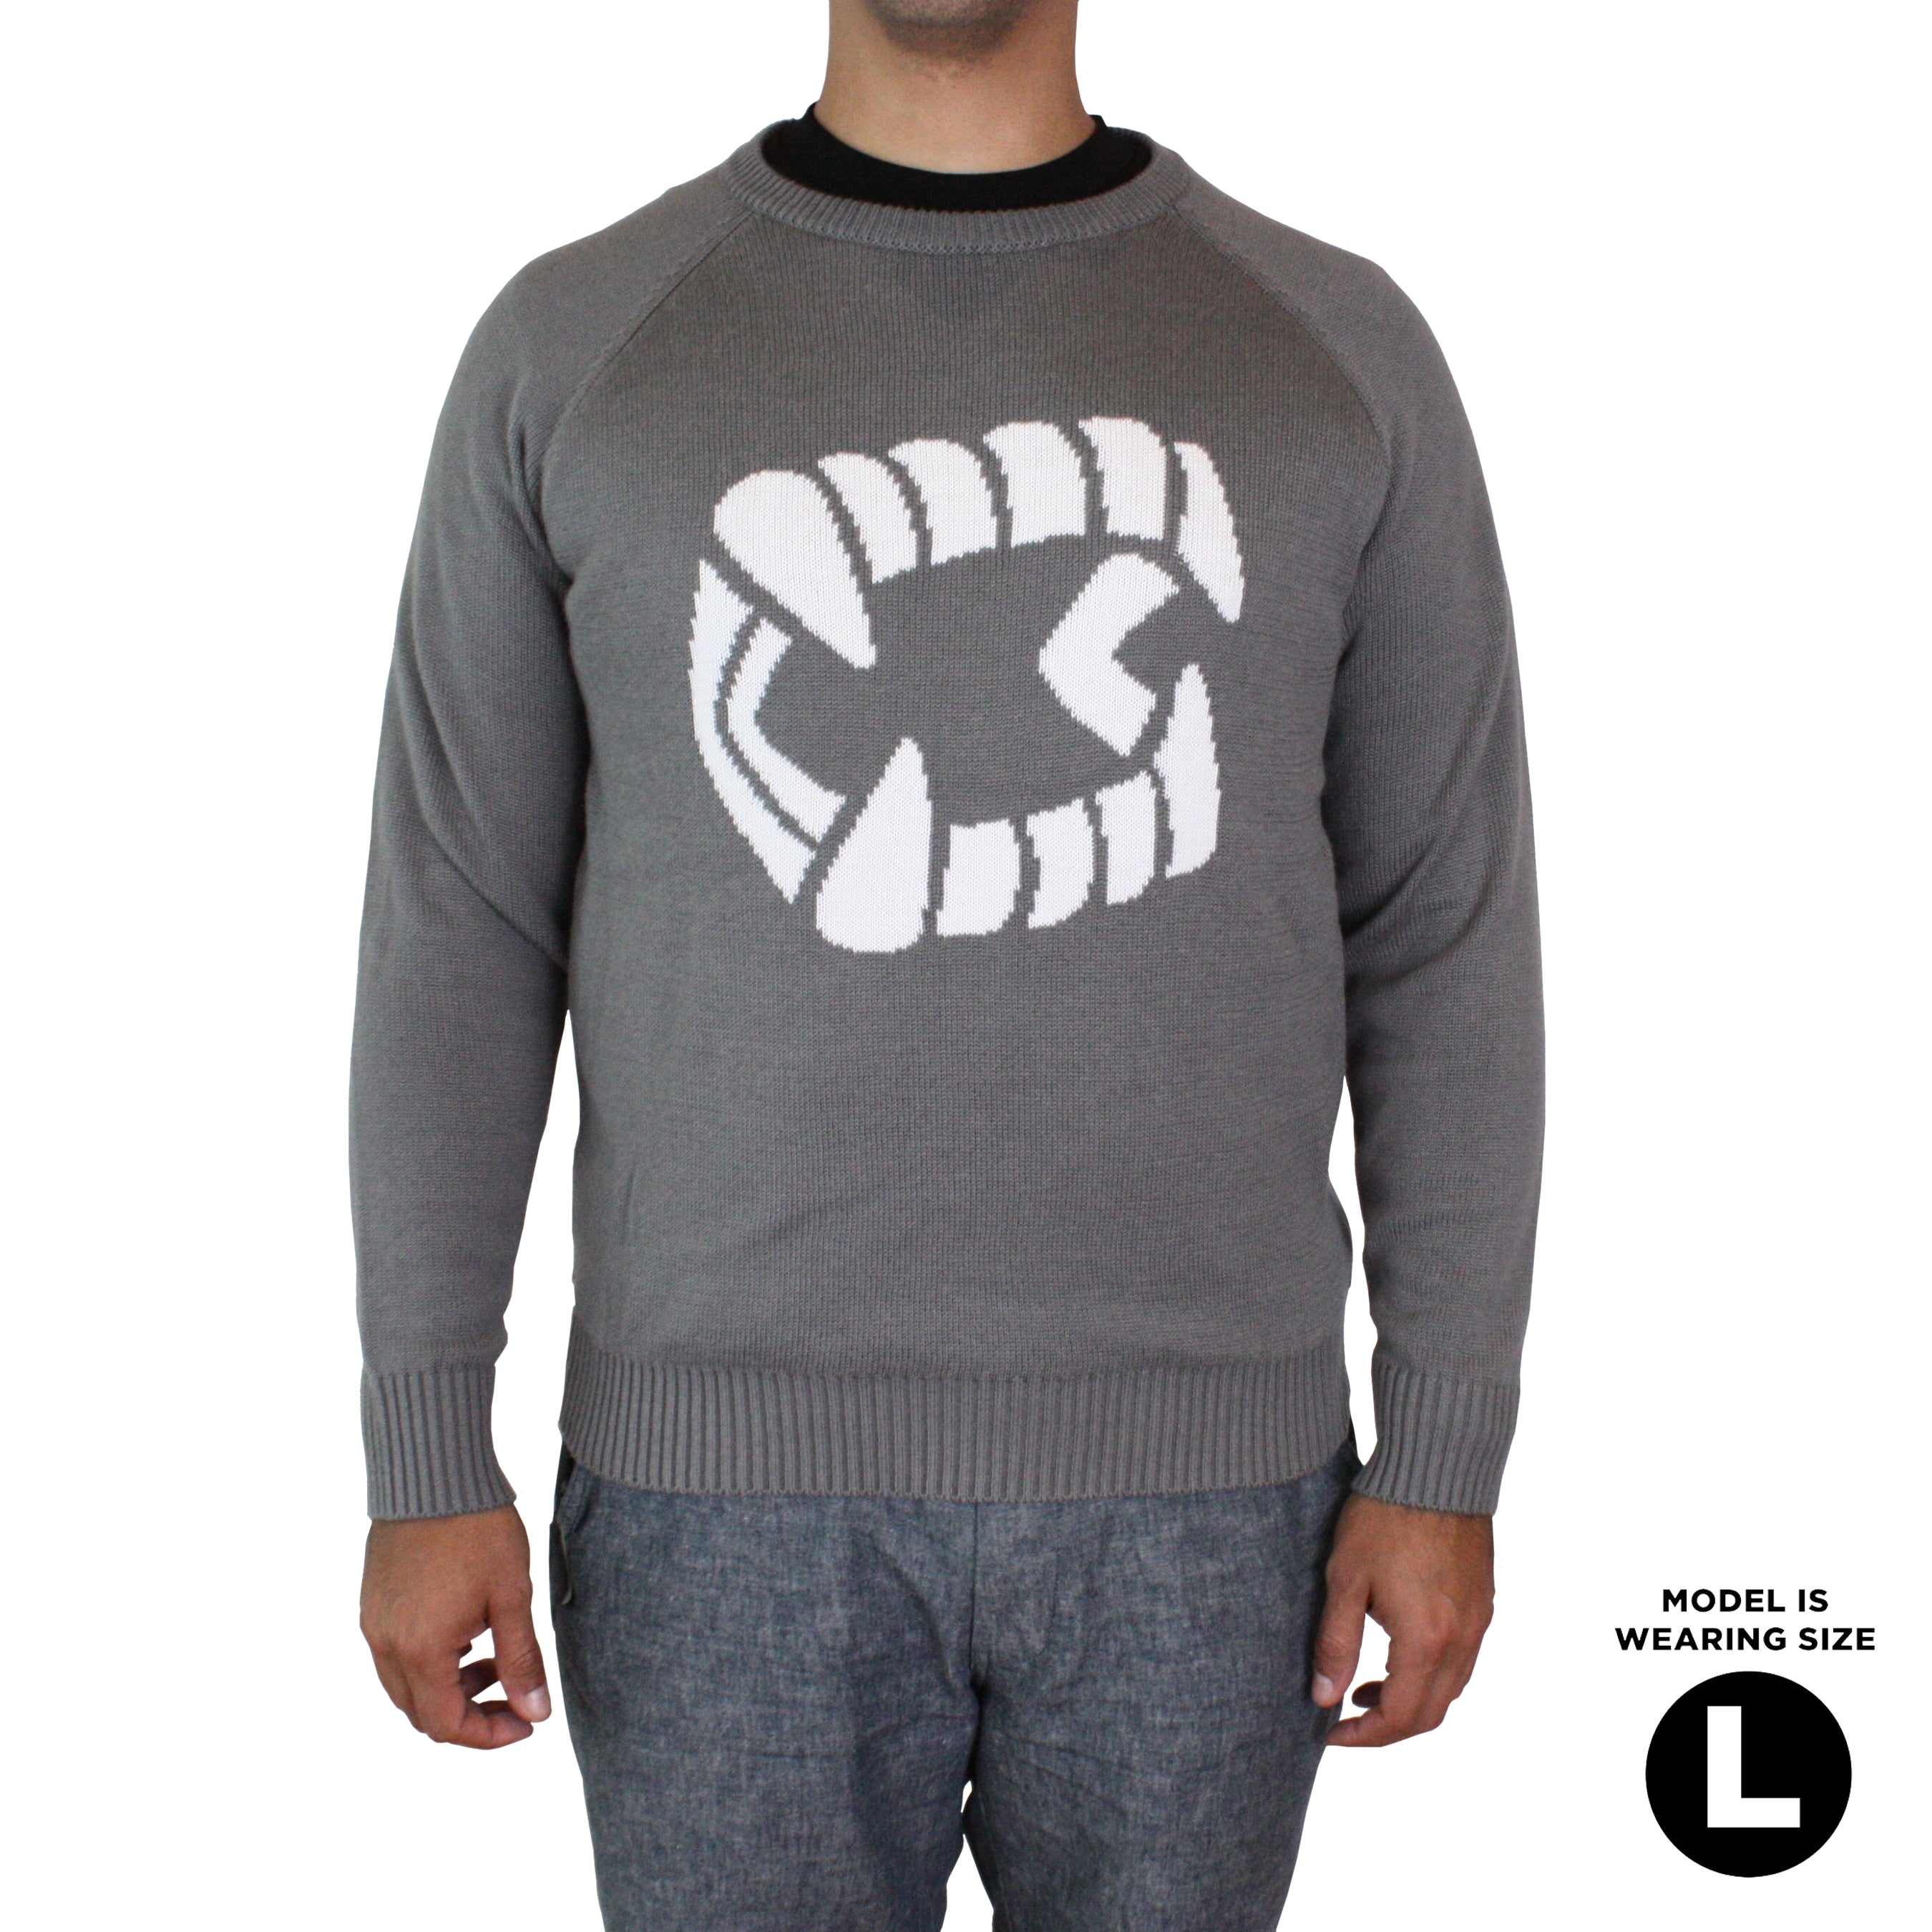 Chompers® Knit Sweater